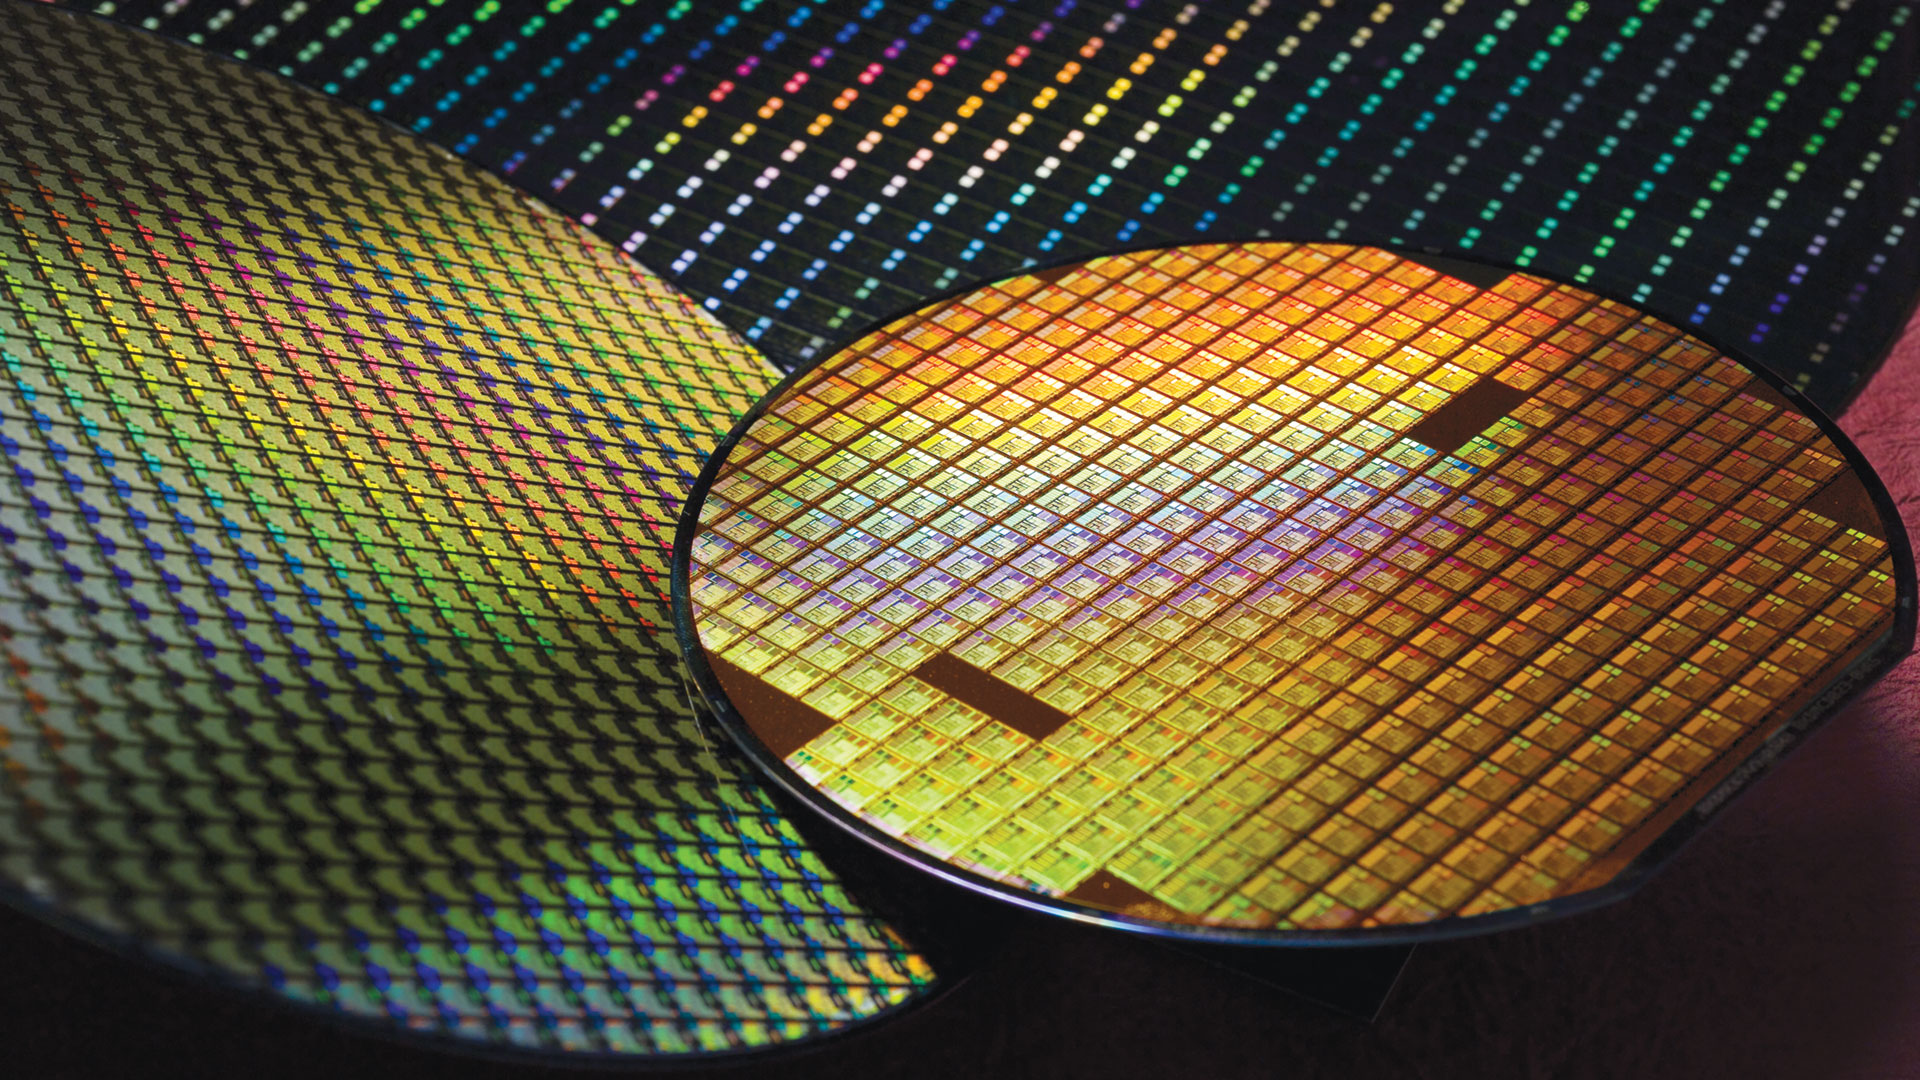 One of the biggest CPU and GPU makers spending $100bn to avoid further hardware shortages